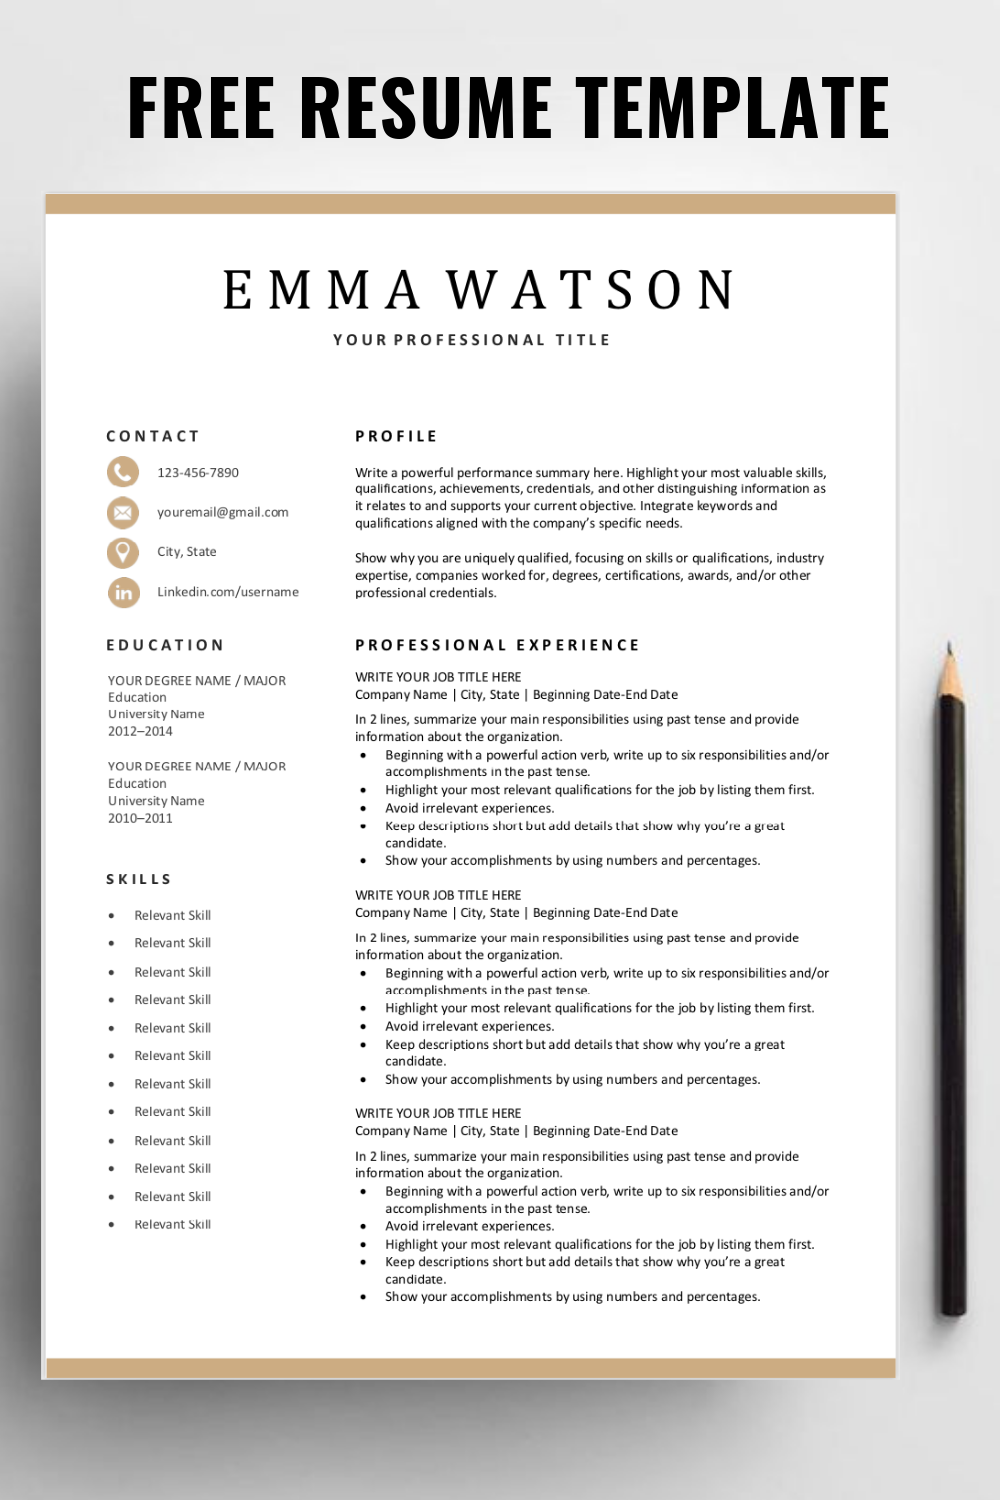 Looking For A Free Editable Resume Template Sign Up For Our Job Search Tip Downloadable Resume Template Resume Template Resume Design Template Microsoft Word